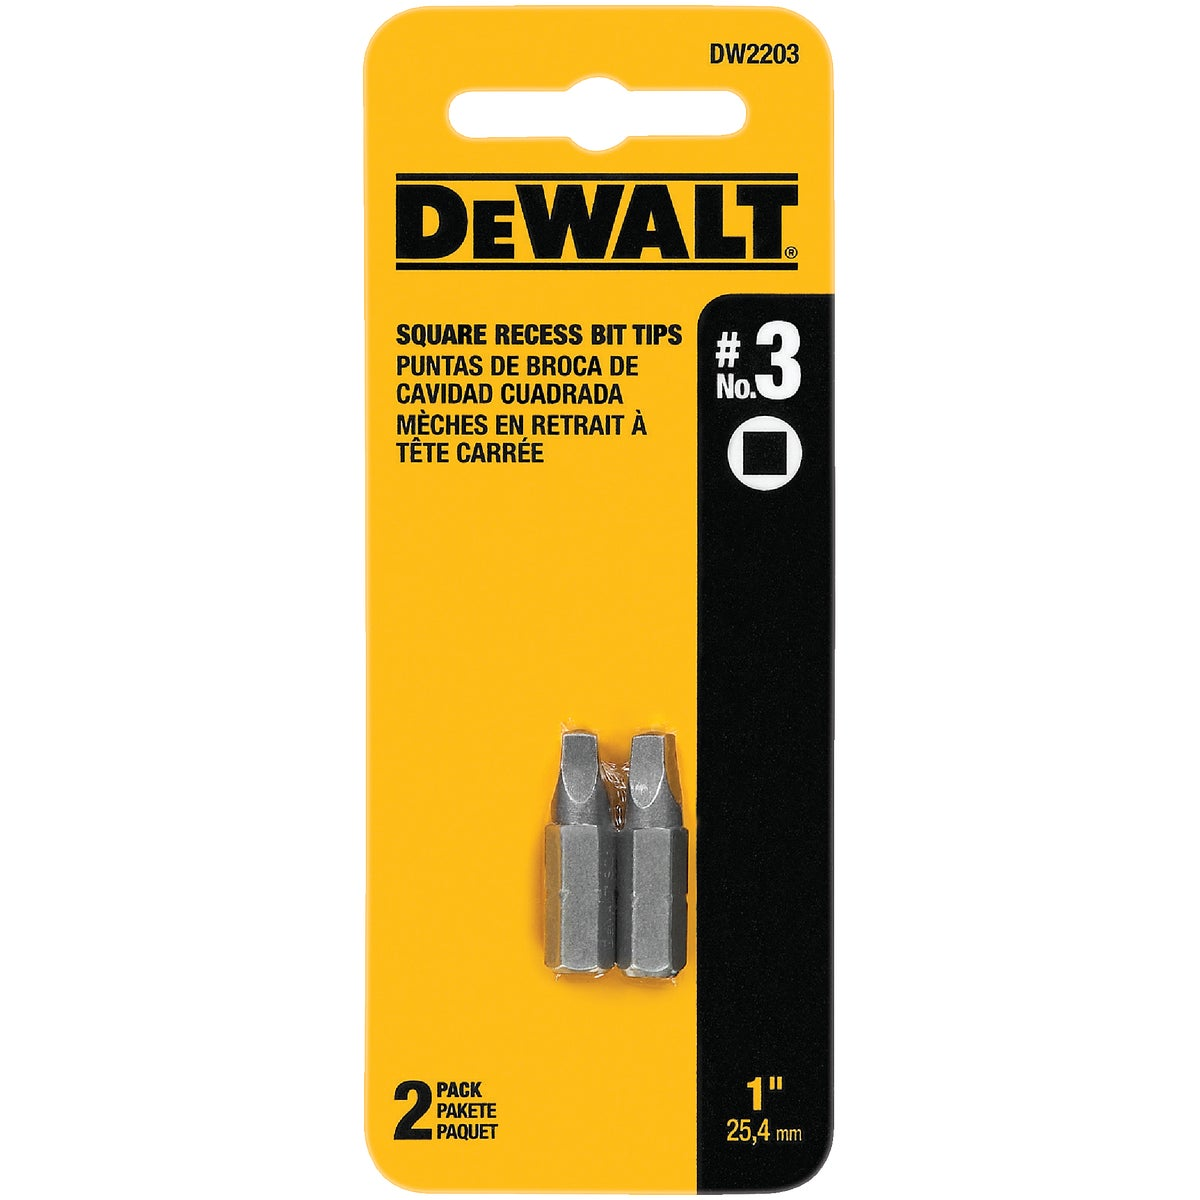 "#3 1"" SQUARE RECESS BIT - DW2203 by DeWalt"